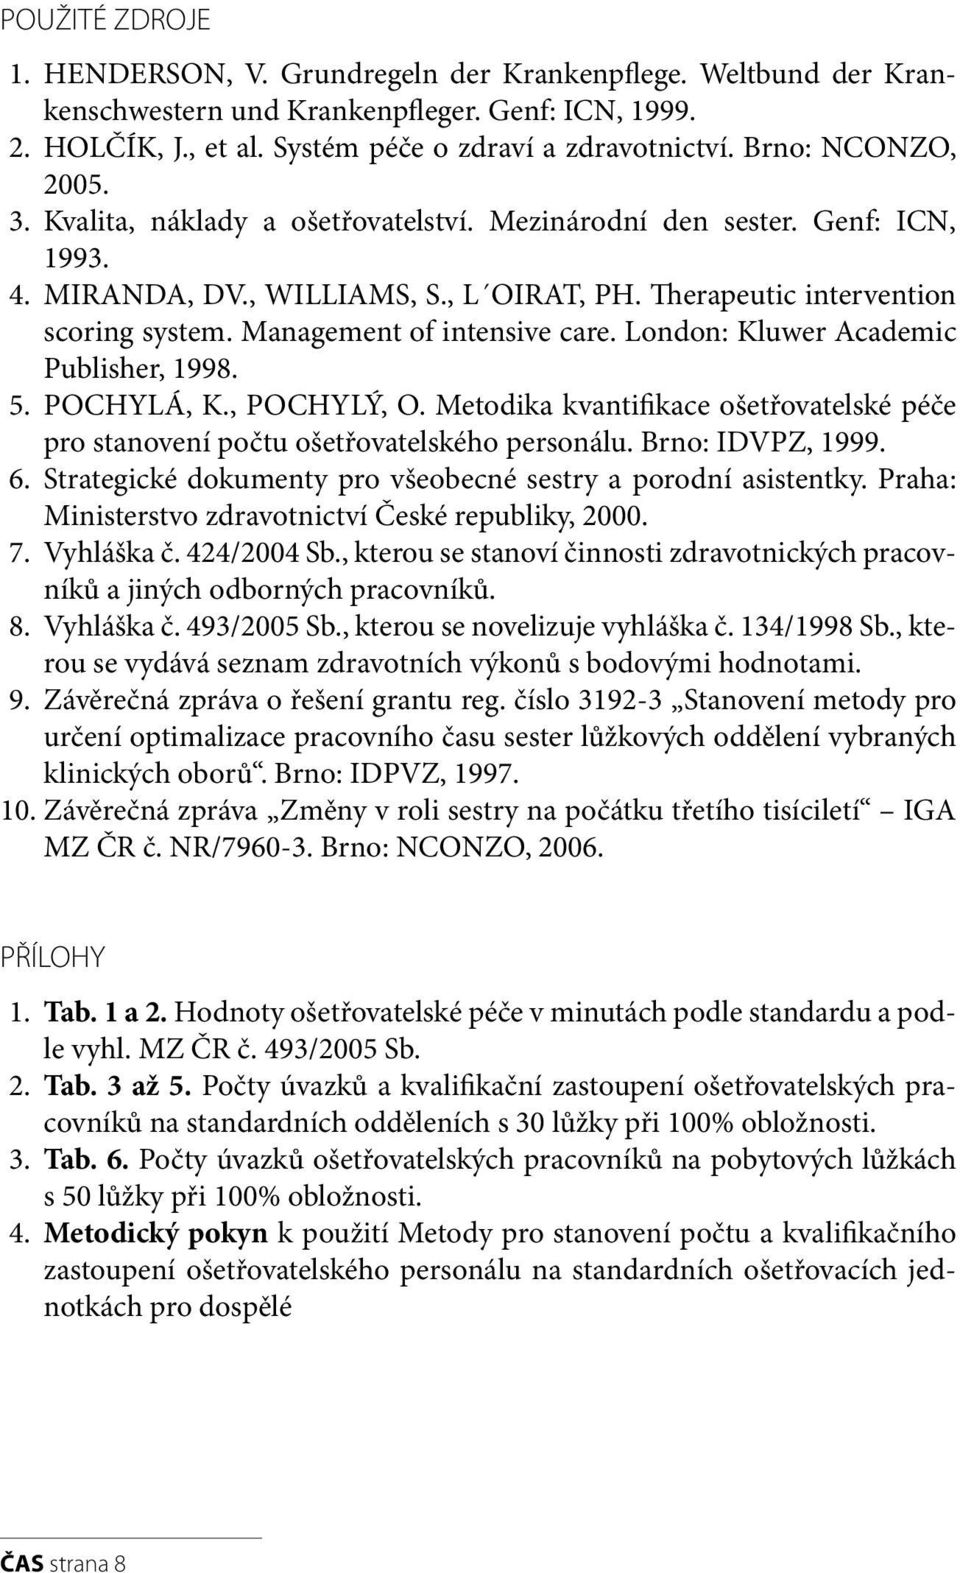 Management of intensive care. London: Kluwer Academic Publisher, 1998. 5. POCHYLÁ, K., POCHYLÝ, O. Metodika kvantifikace ošetřovatelské péče pro stanovení počtu ošetřovatelského personálu.